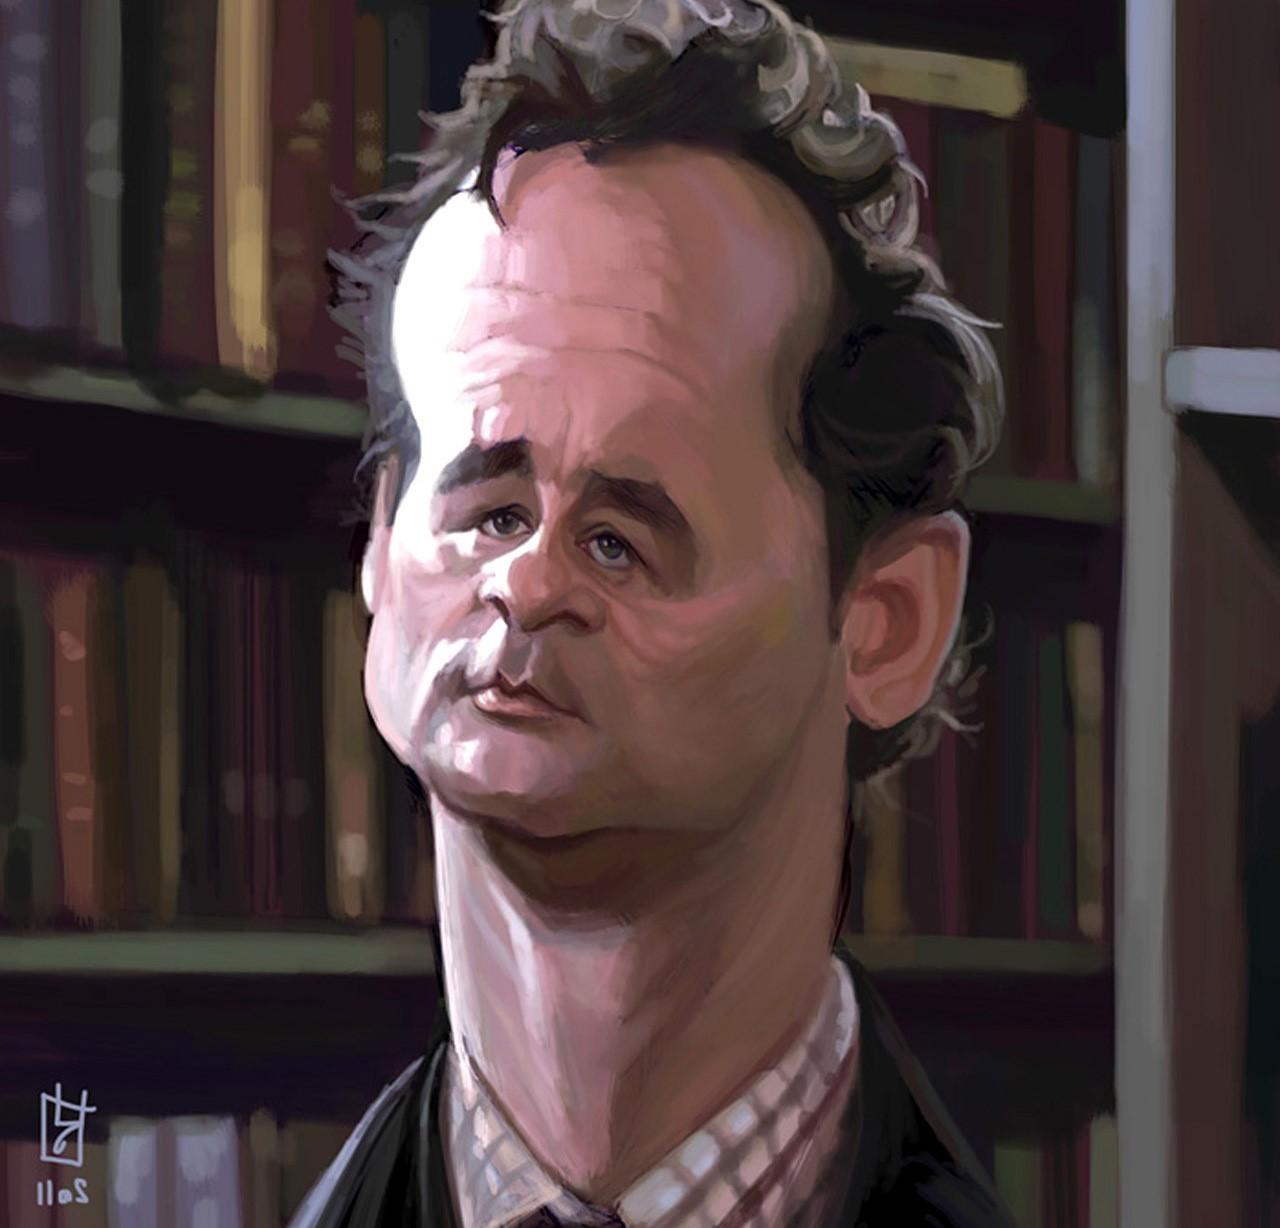 artistic bill murray artwork caricature wallpaper and background